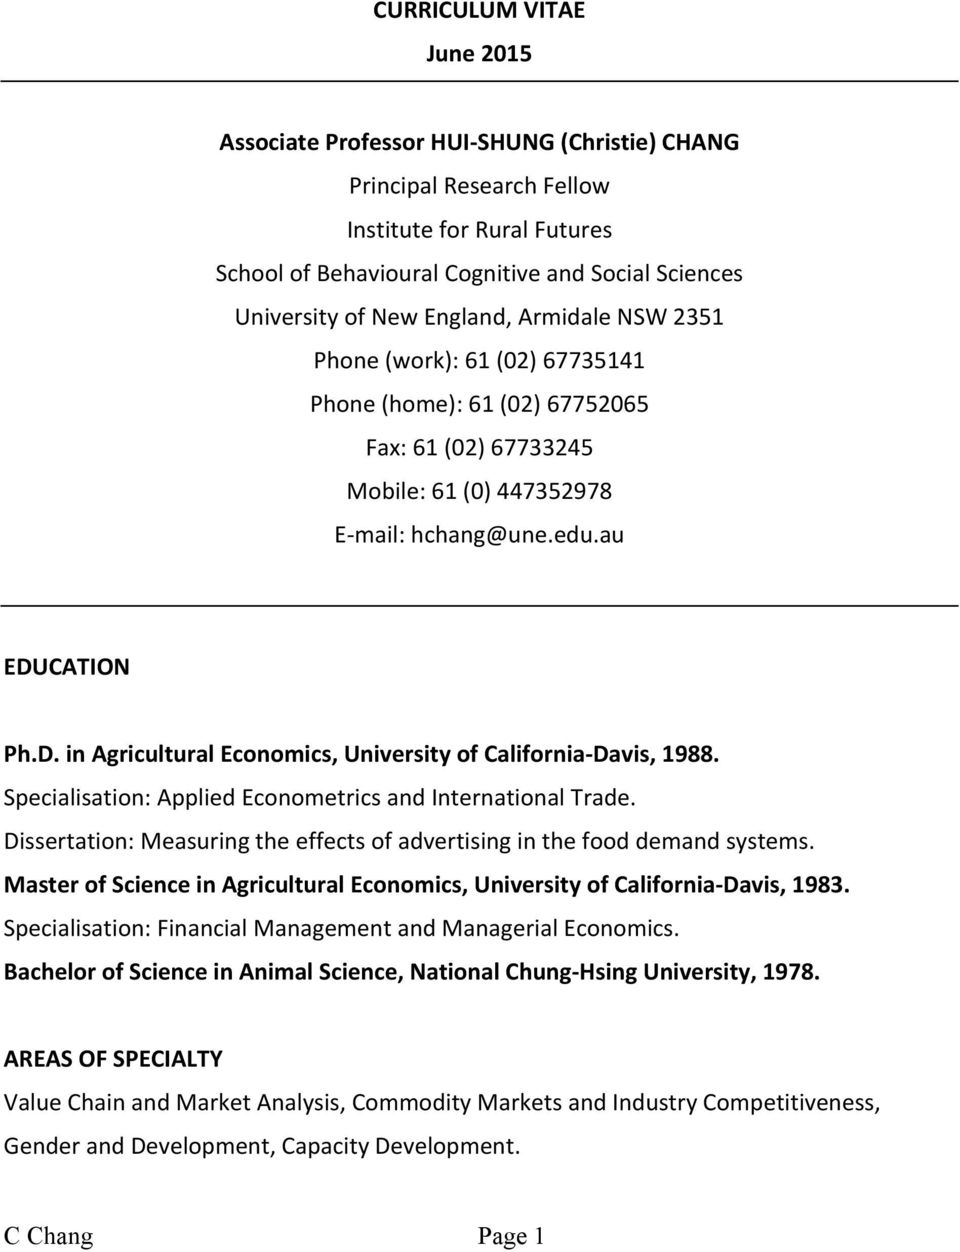 CATION Ph.D. in Agricultural Economics, University of California- Davis, 1988. Specialisation: Applied Econometrics and International Trade.